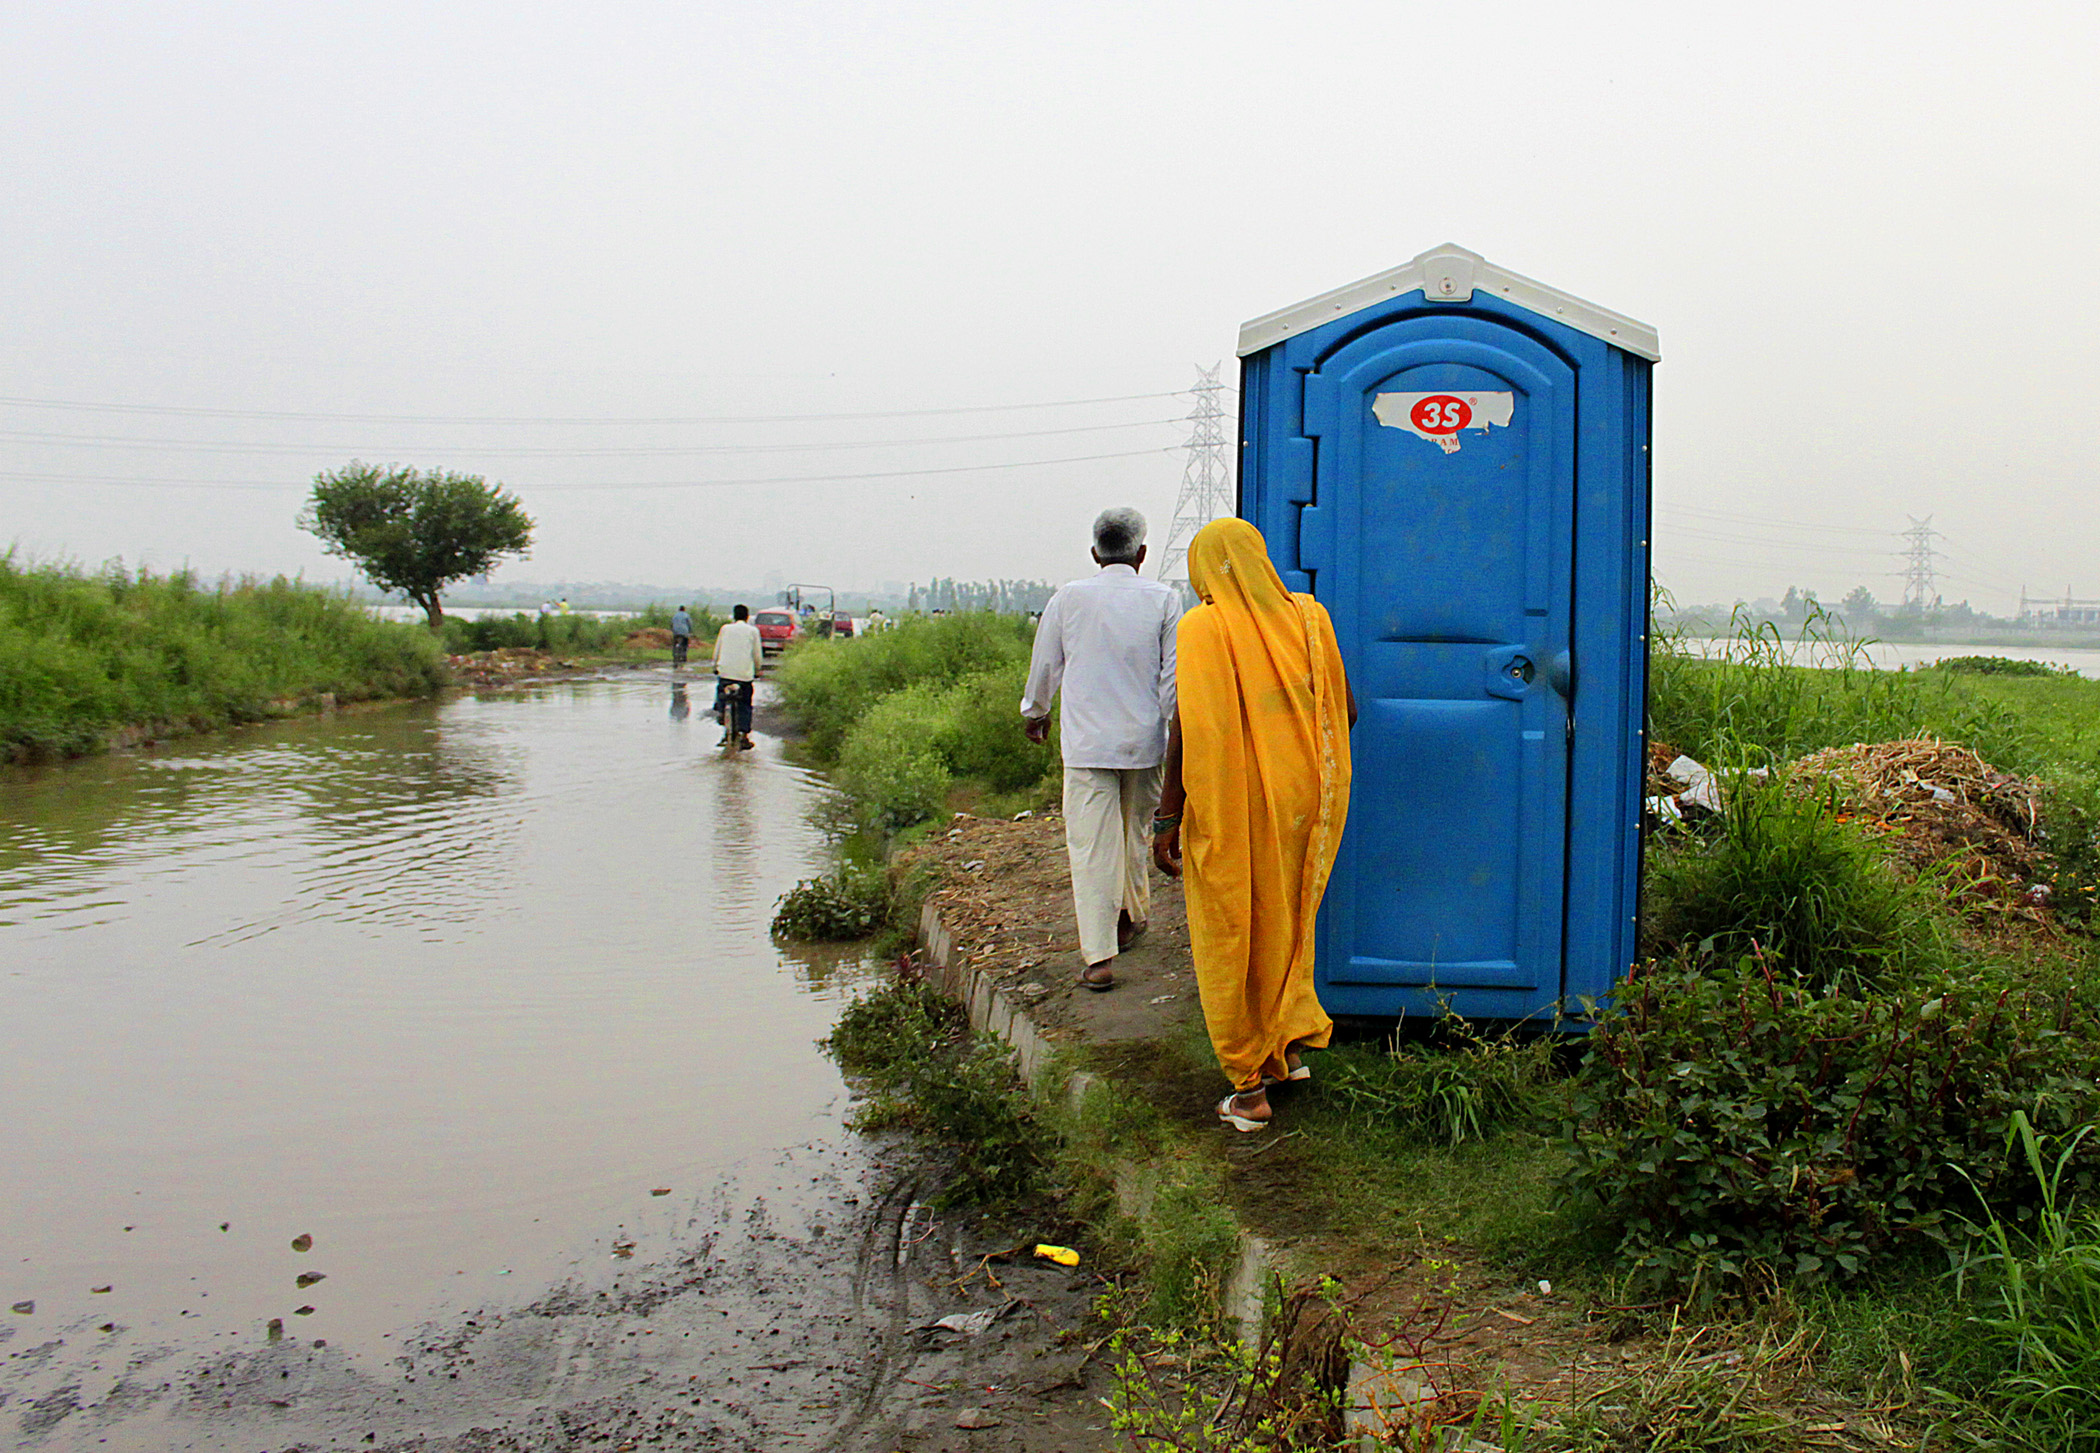 Toilet Installed at flooded area